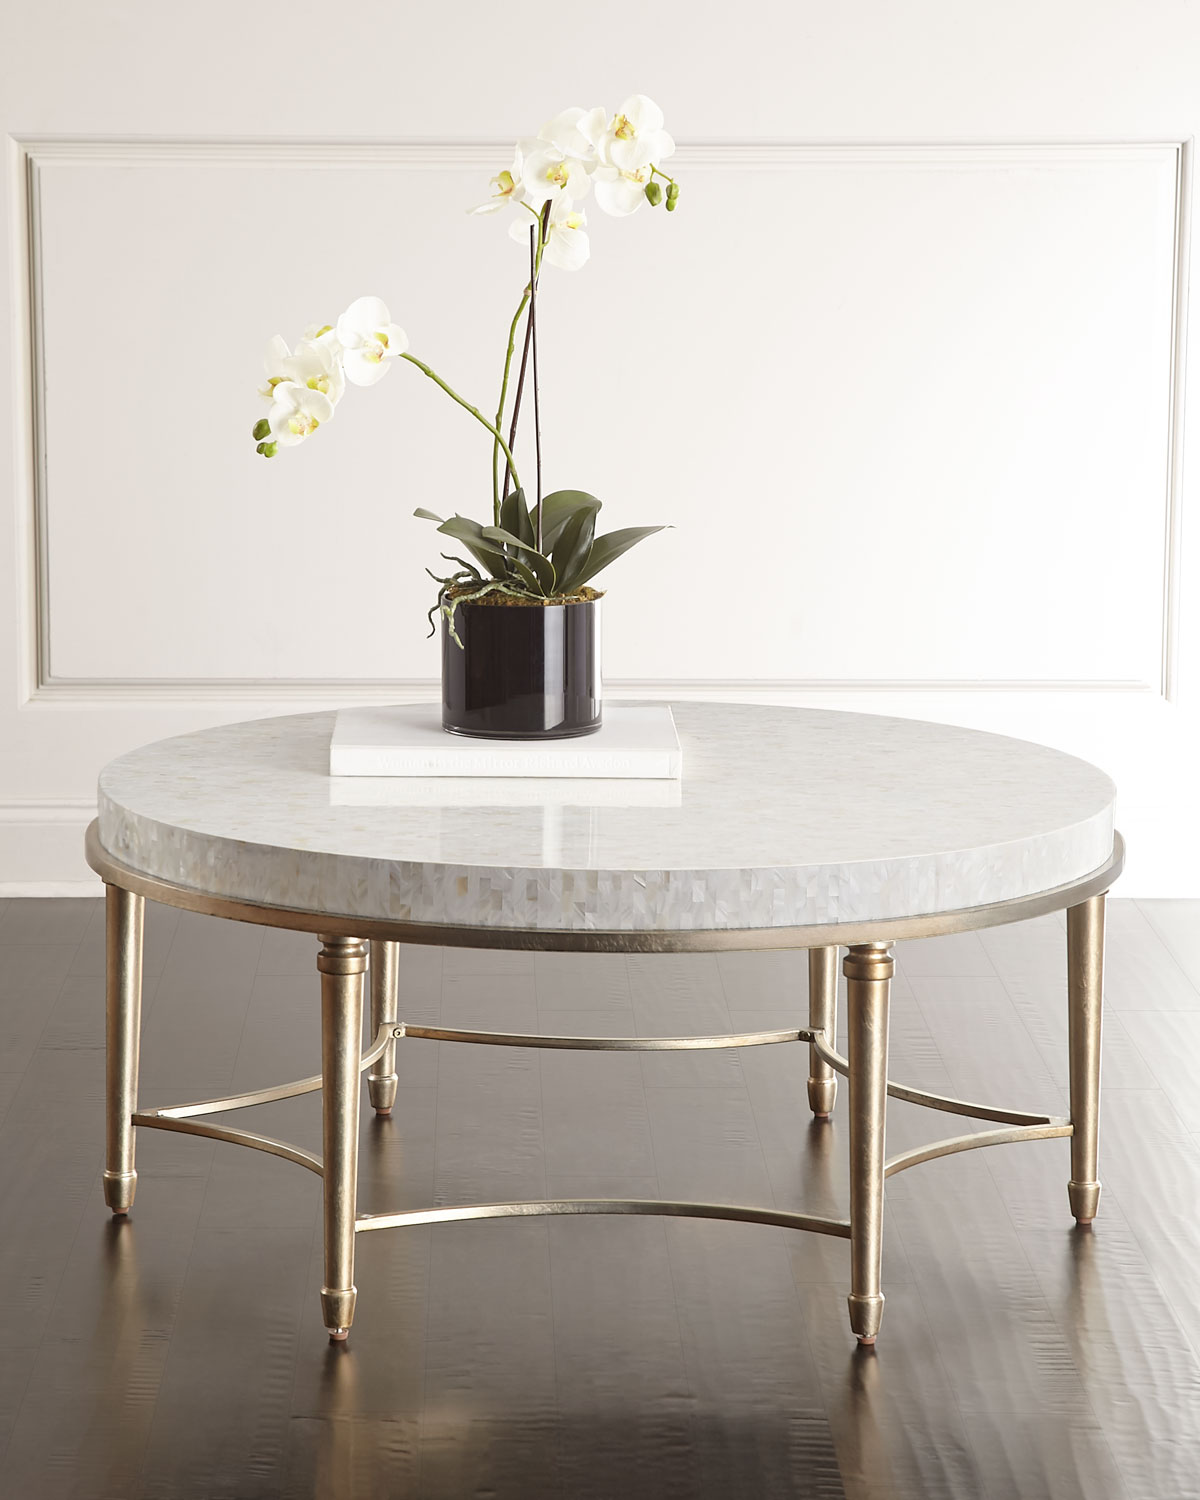 Cynthia Rowley For Furniture Aura Round Coffee Table